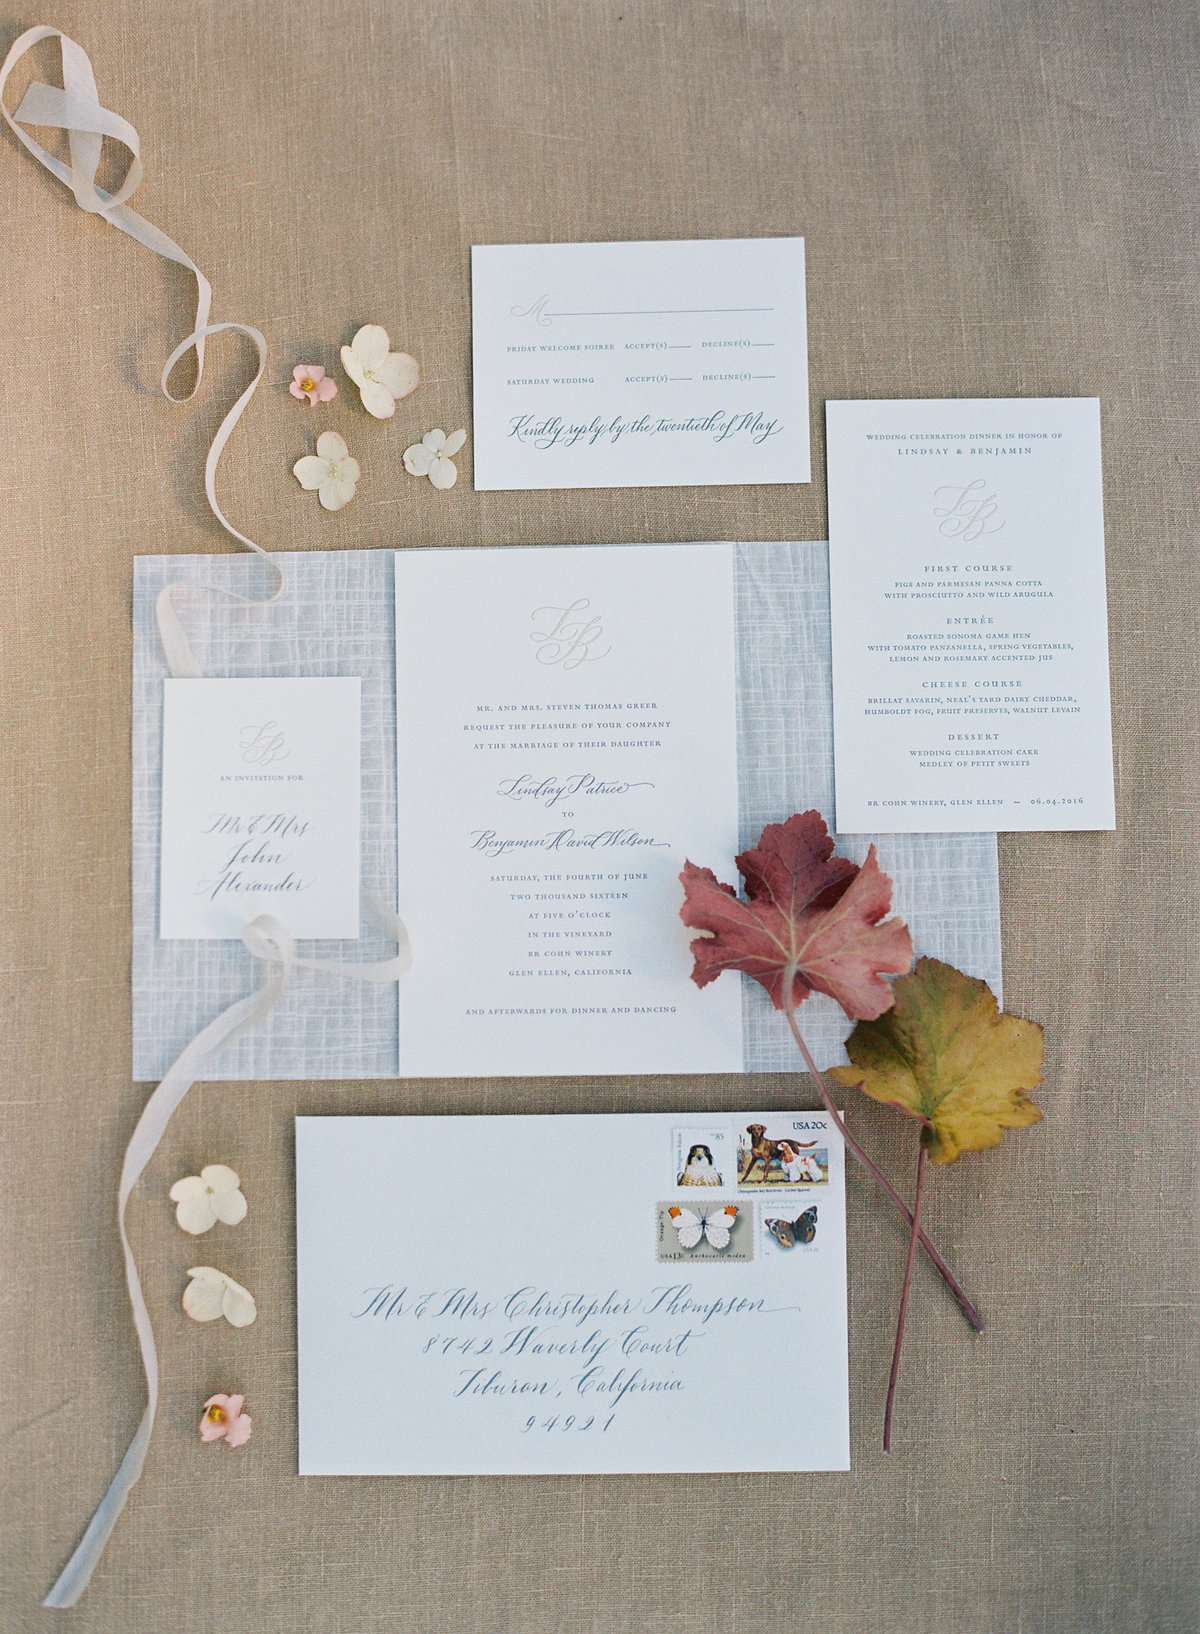 Invitation for wedding by Jenny Schneider Events in Napa Valley, California. Photo by Eric Kelley Photography.